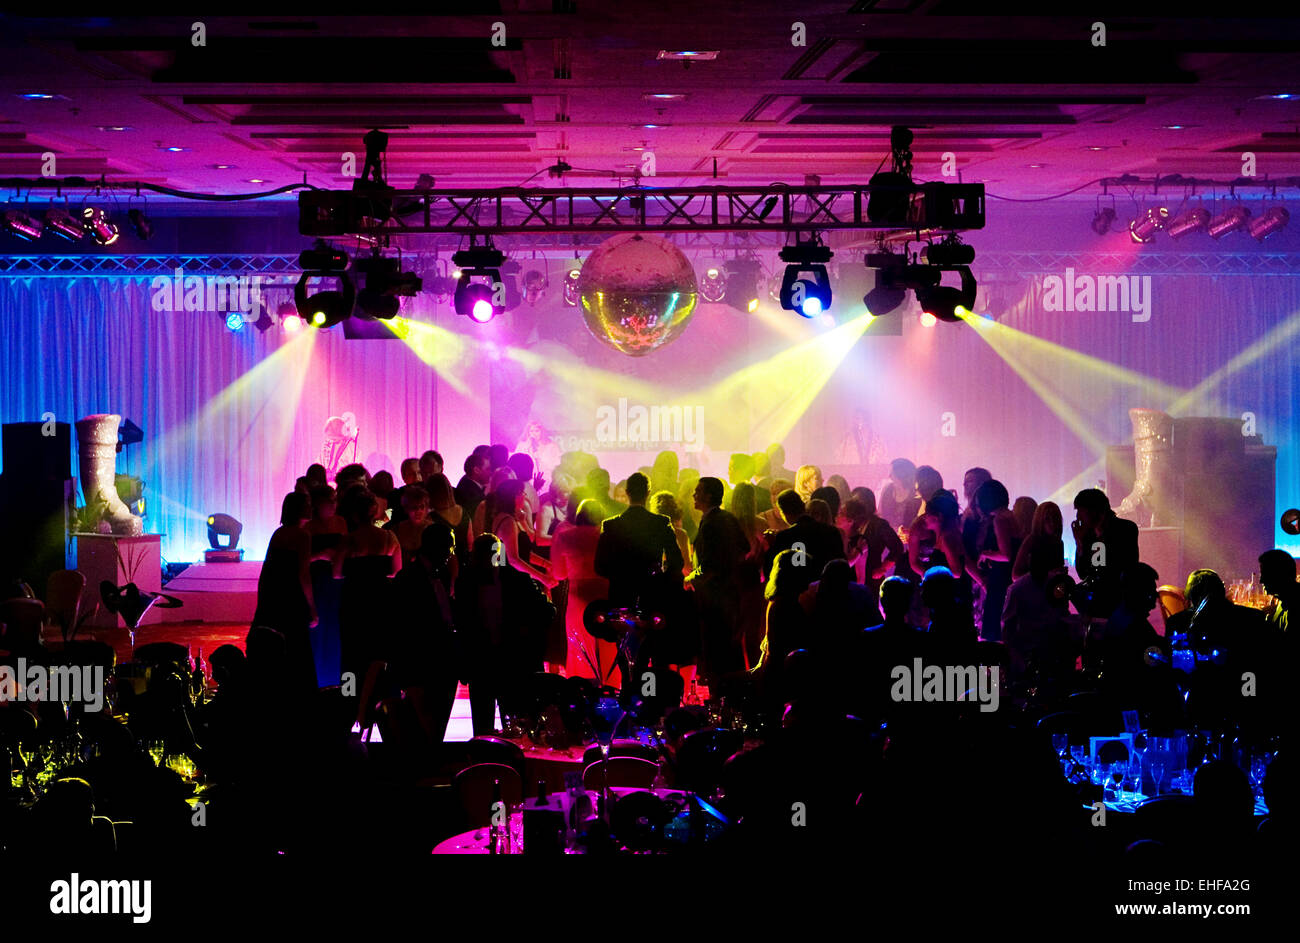 Christmas party at the Hilton Metropole London. - Stock Image